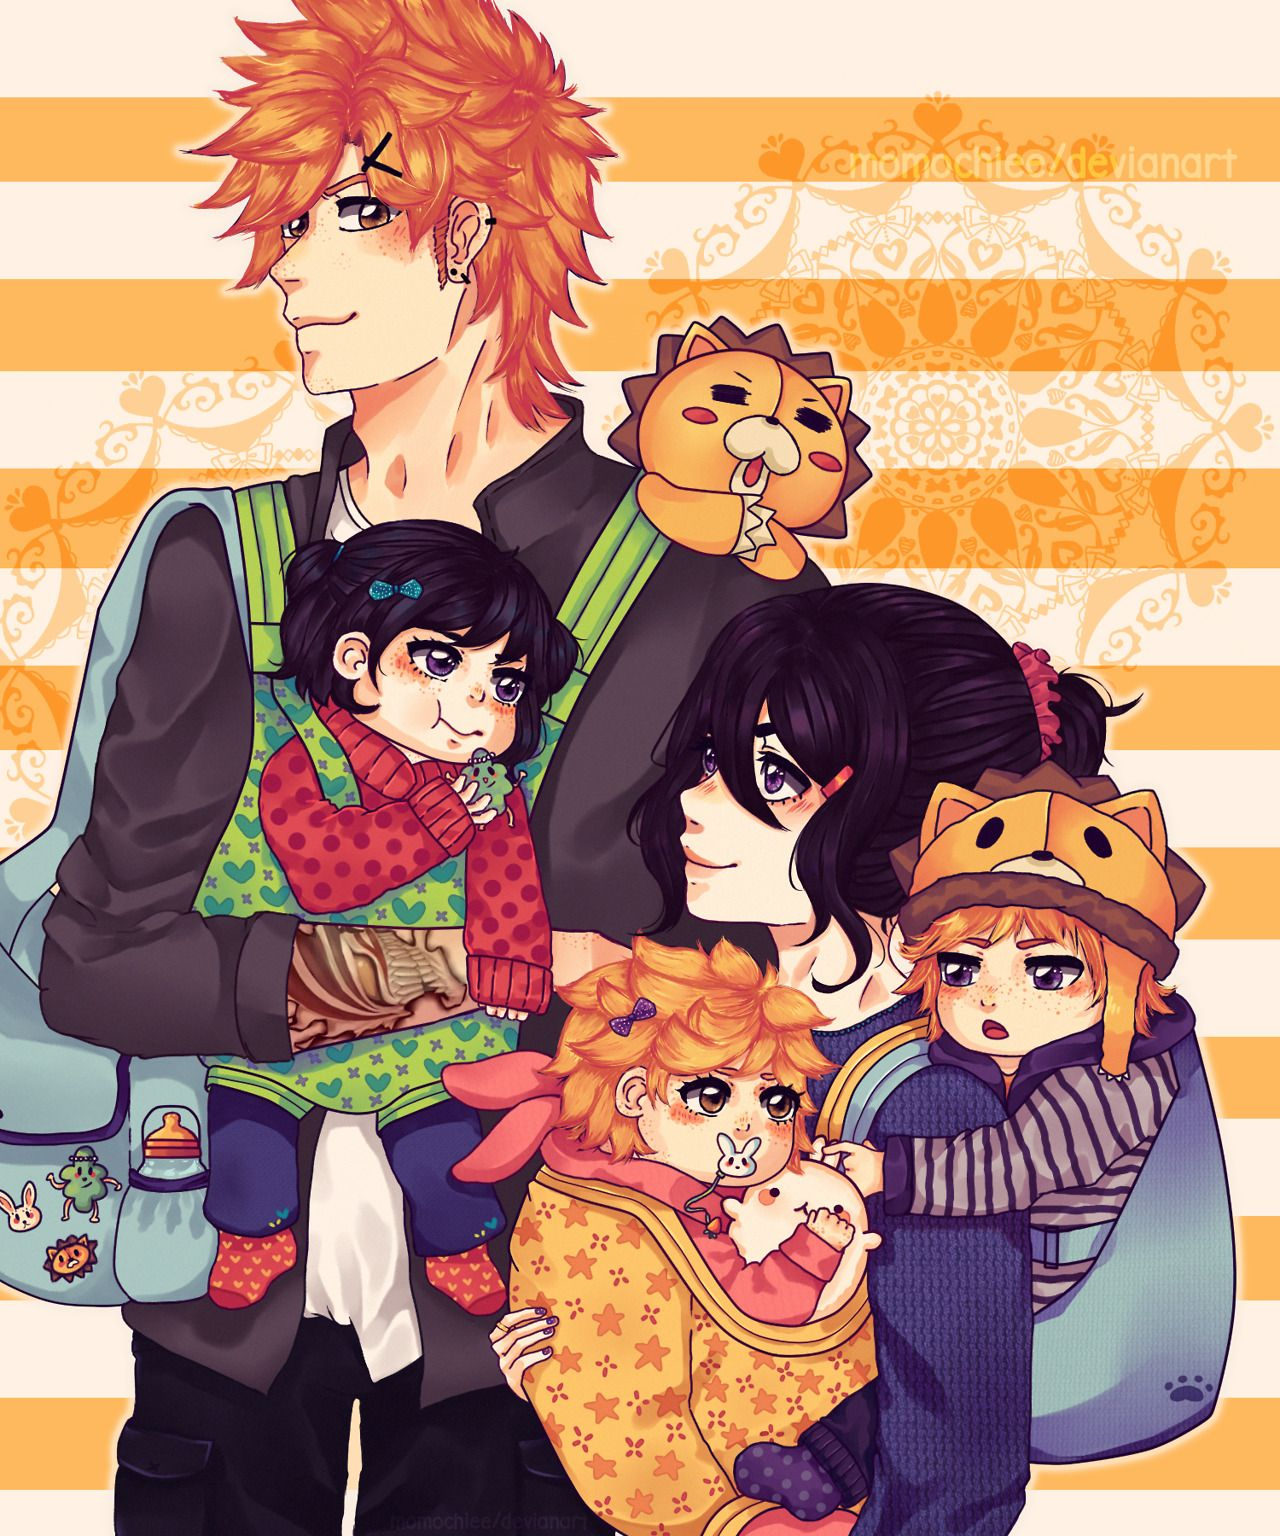 Pin by Anika Mifsud on ICHIRUKI LOVE Anime, Cute, Art